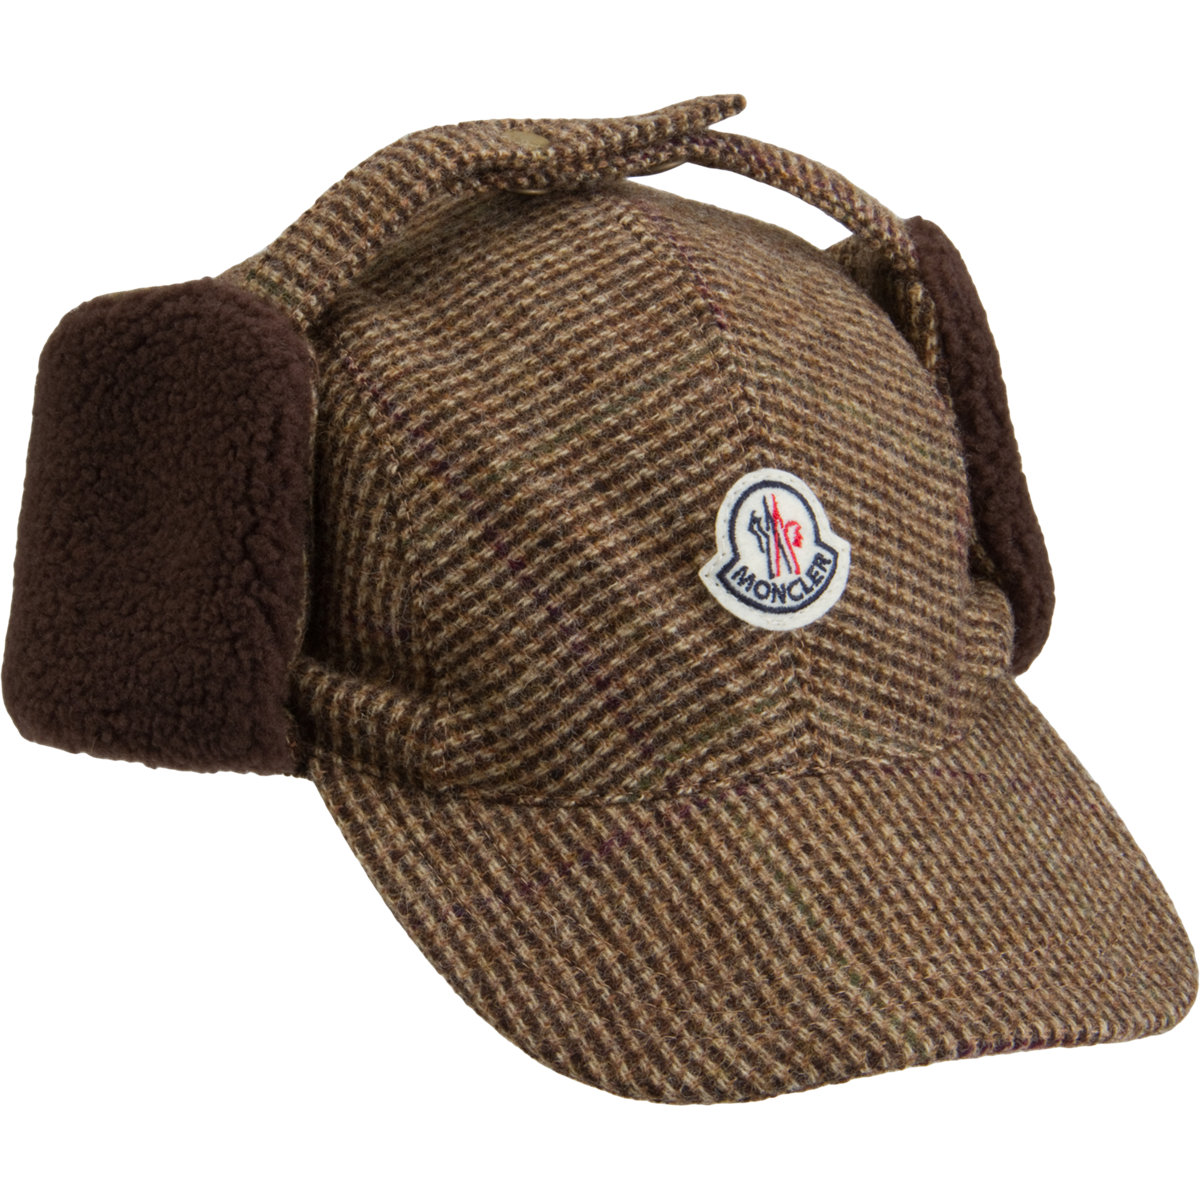 f08eea39b0da66 Moncler brown ear flap cap product jpg 1200x1200 Nike cap with ear flaps